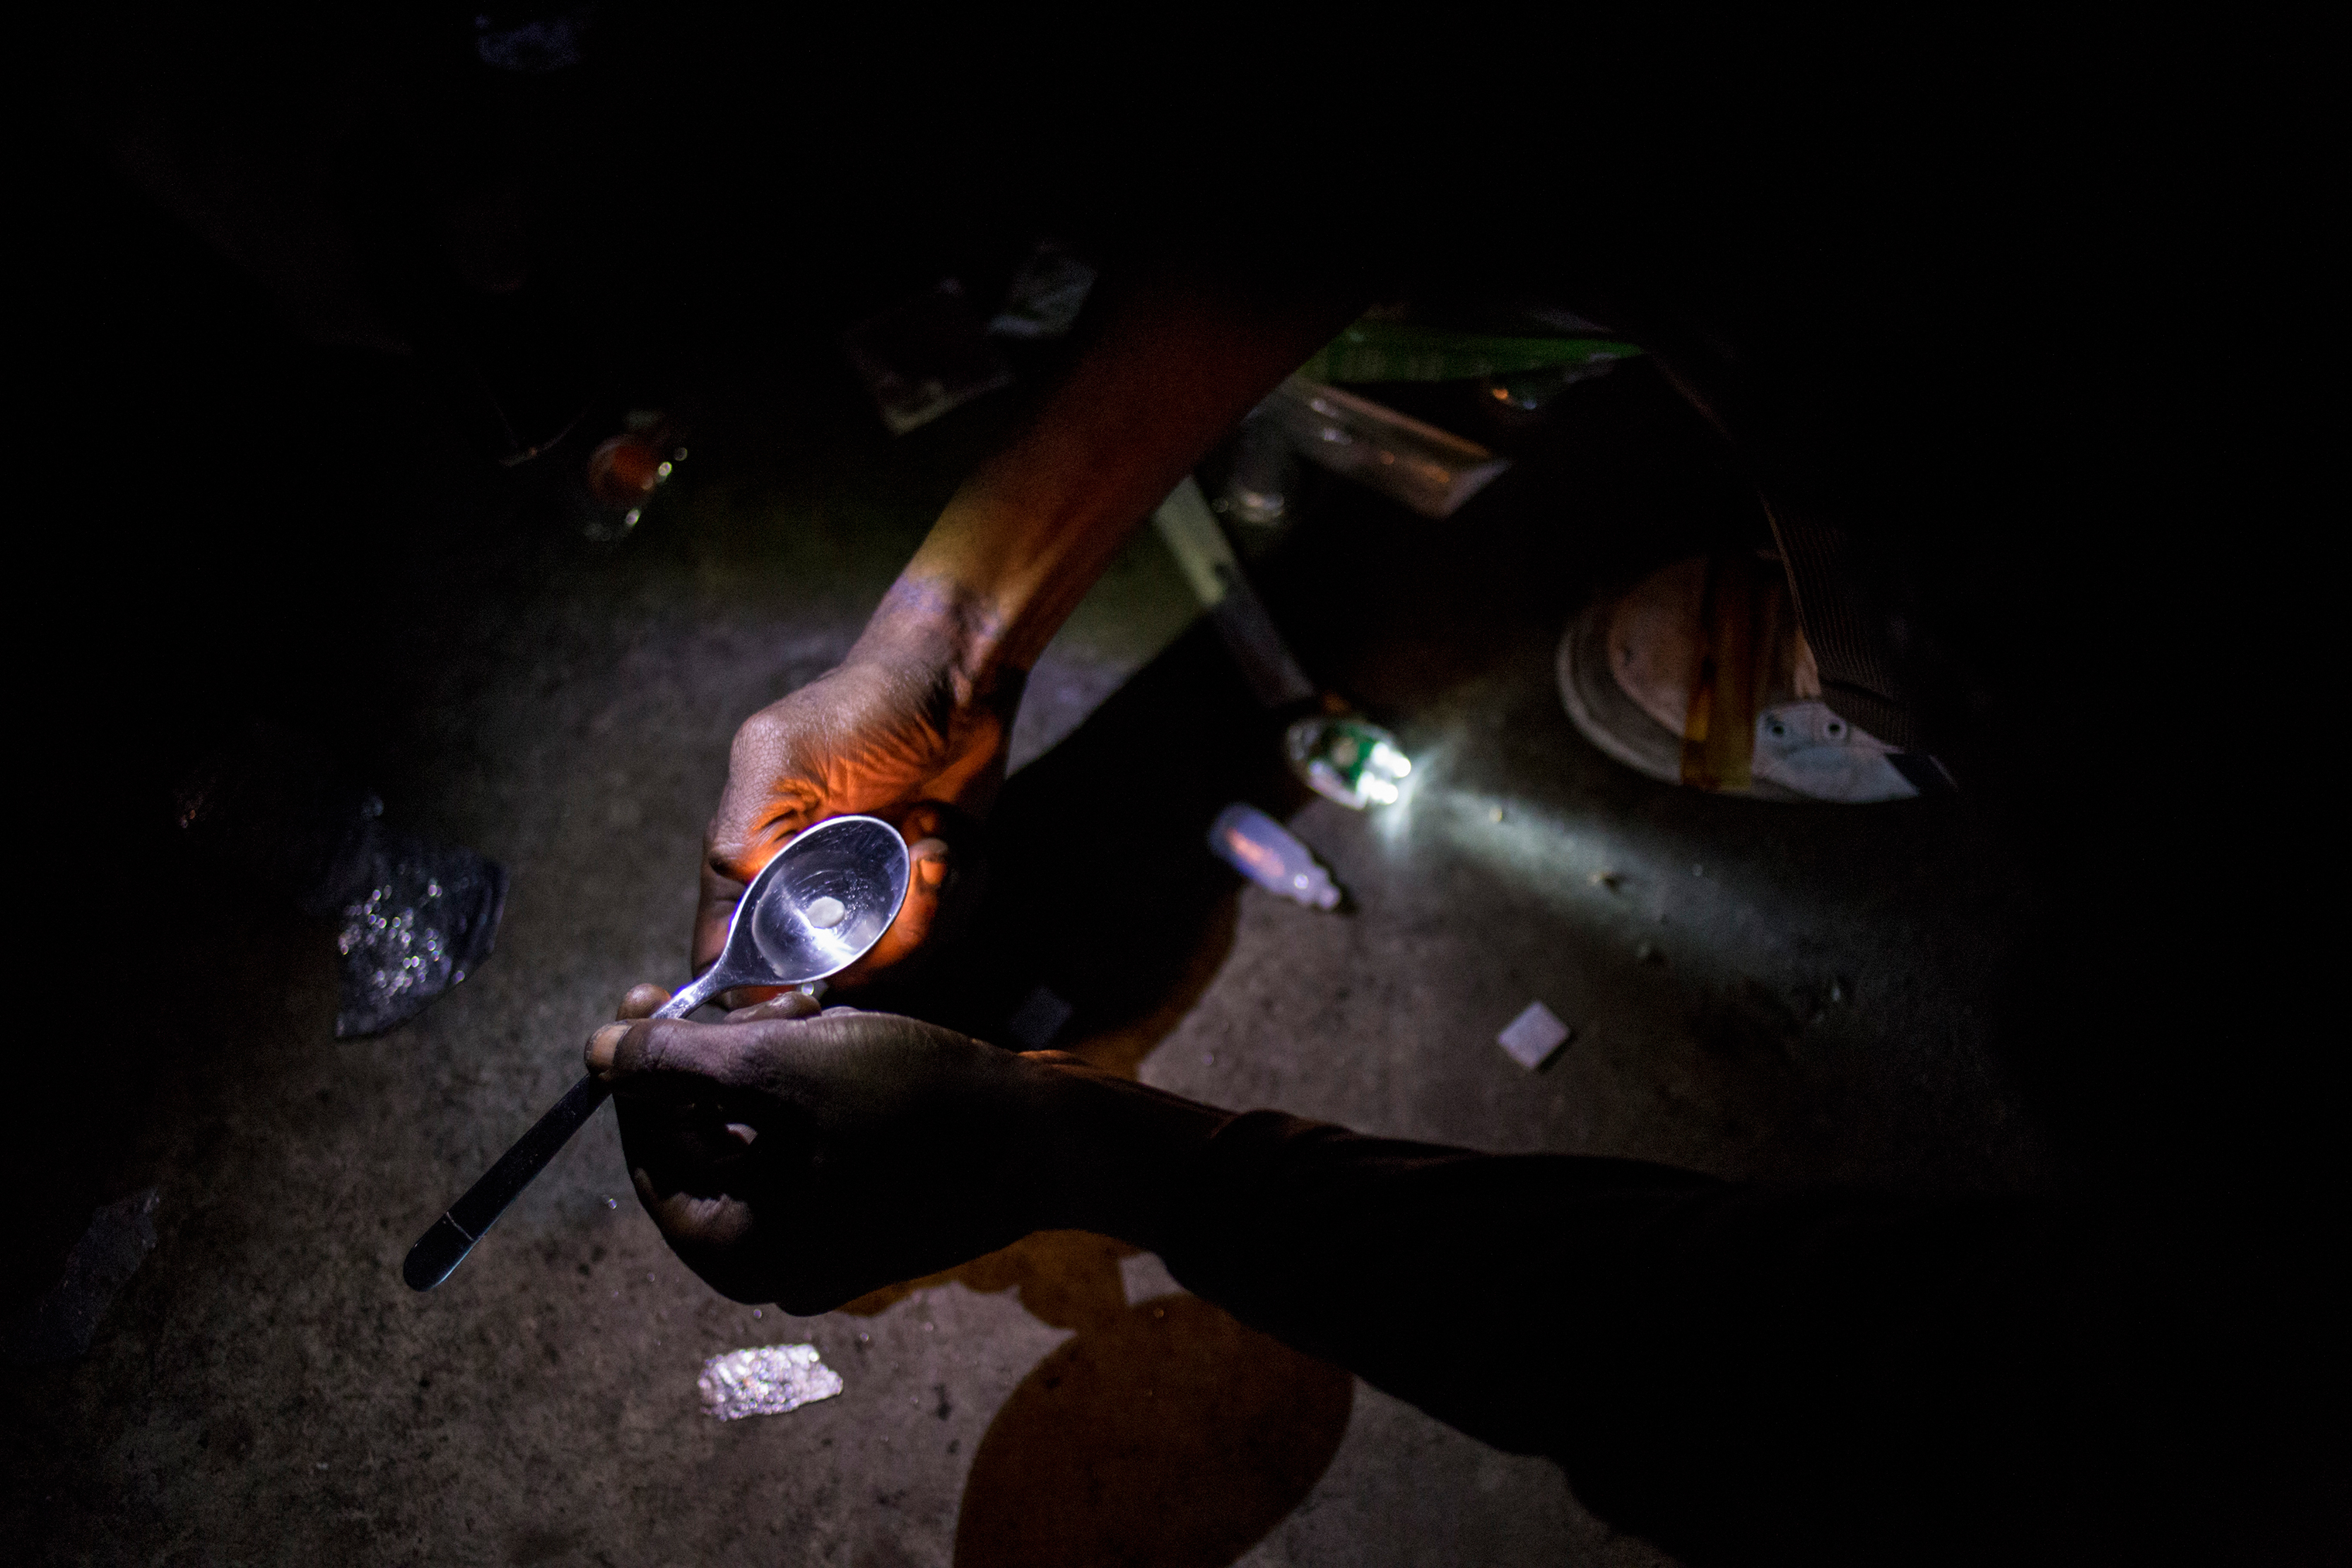 A man prepares a hit of cocaine with the kit provided by the outreach team, in Lamin's room, near Casal Ventoso, in Lisbon, February 6, 2017.